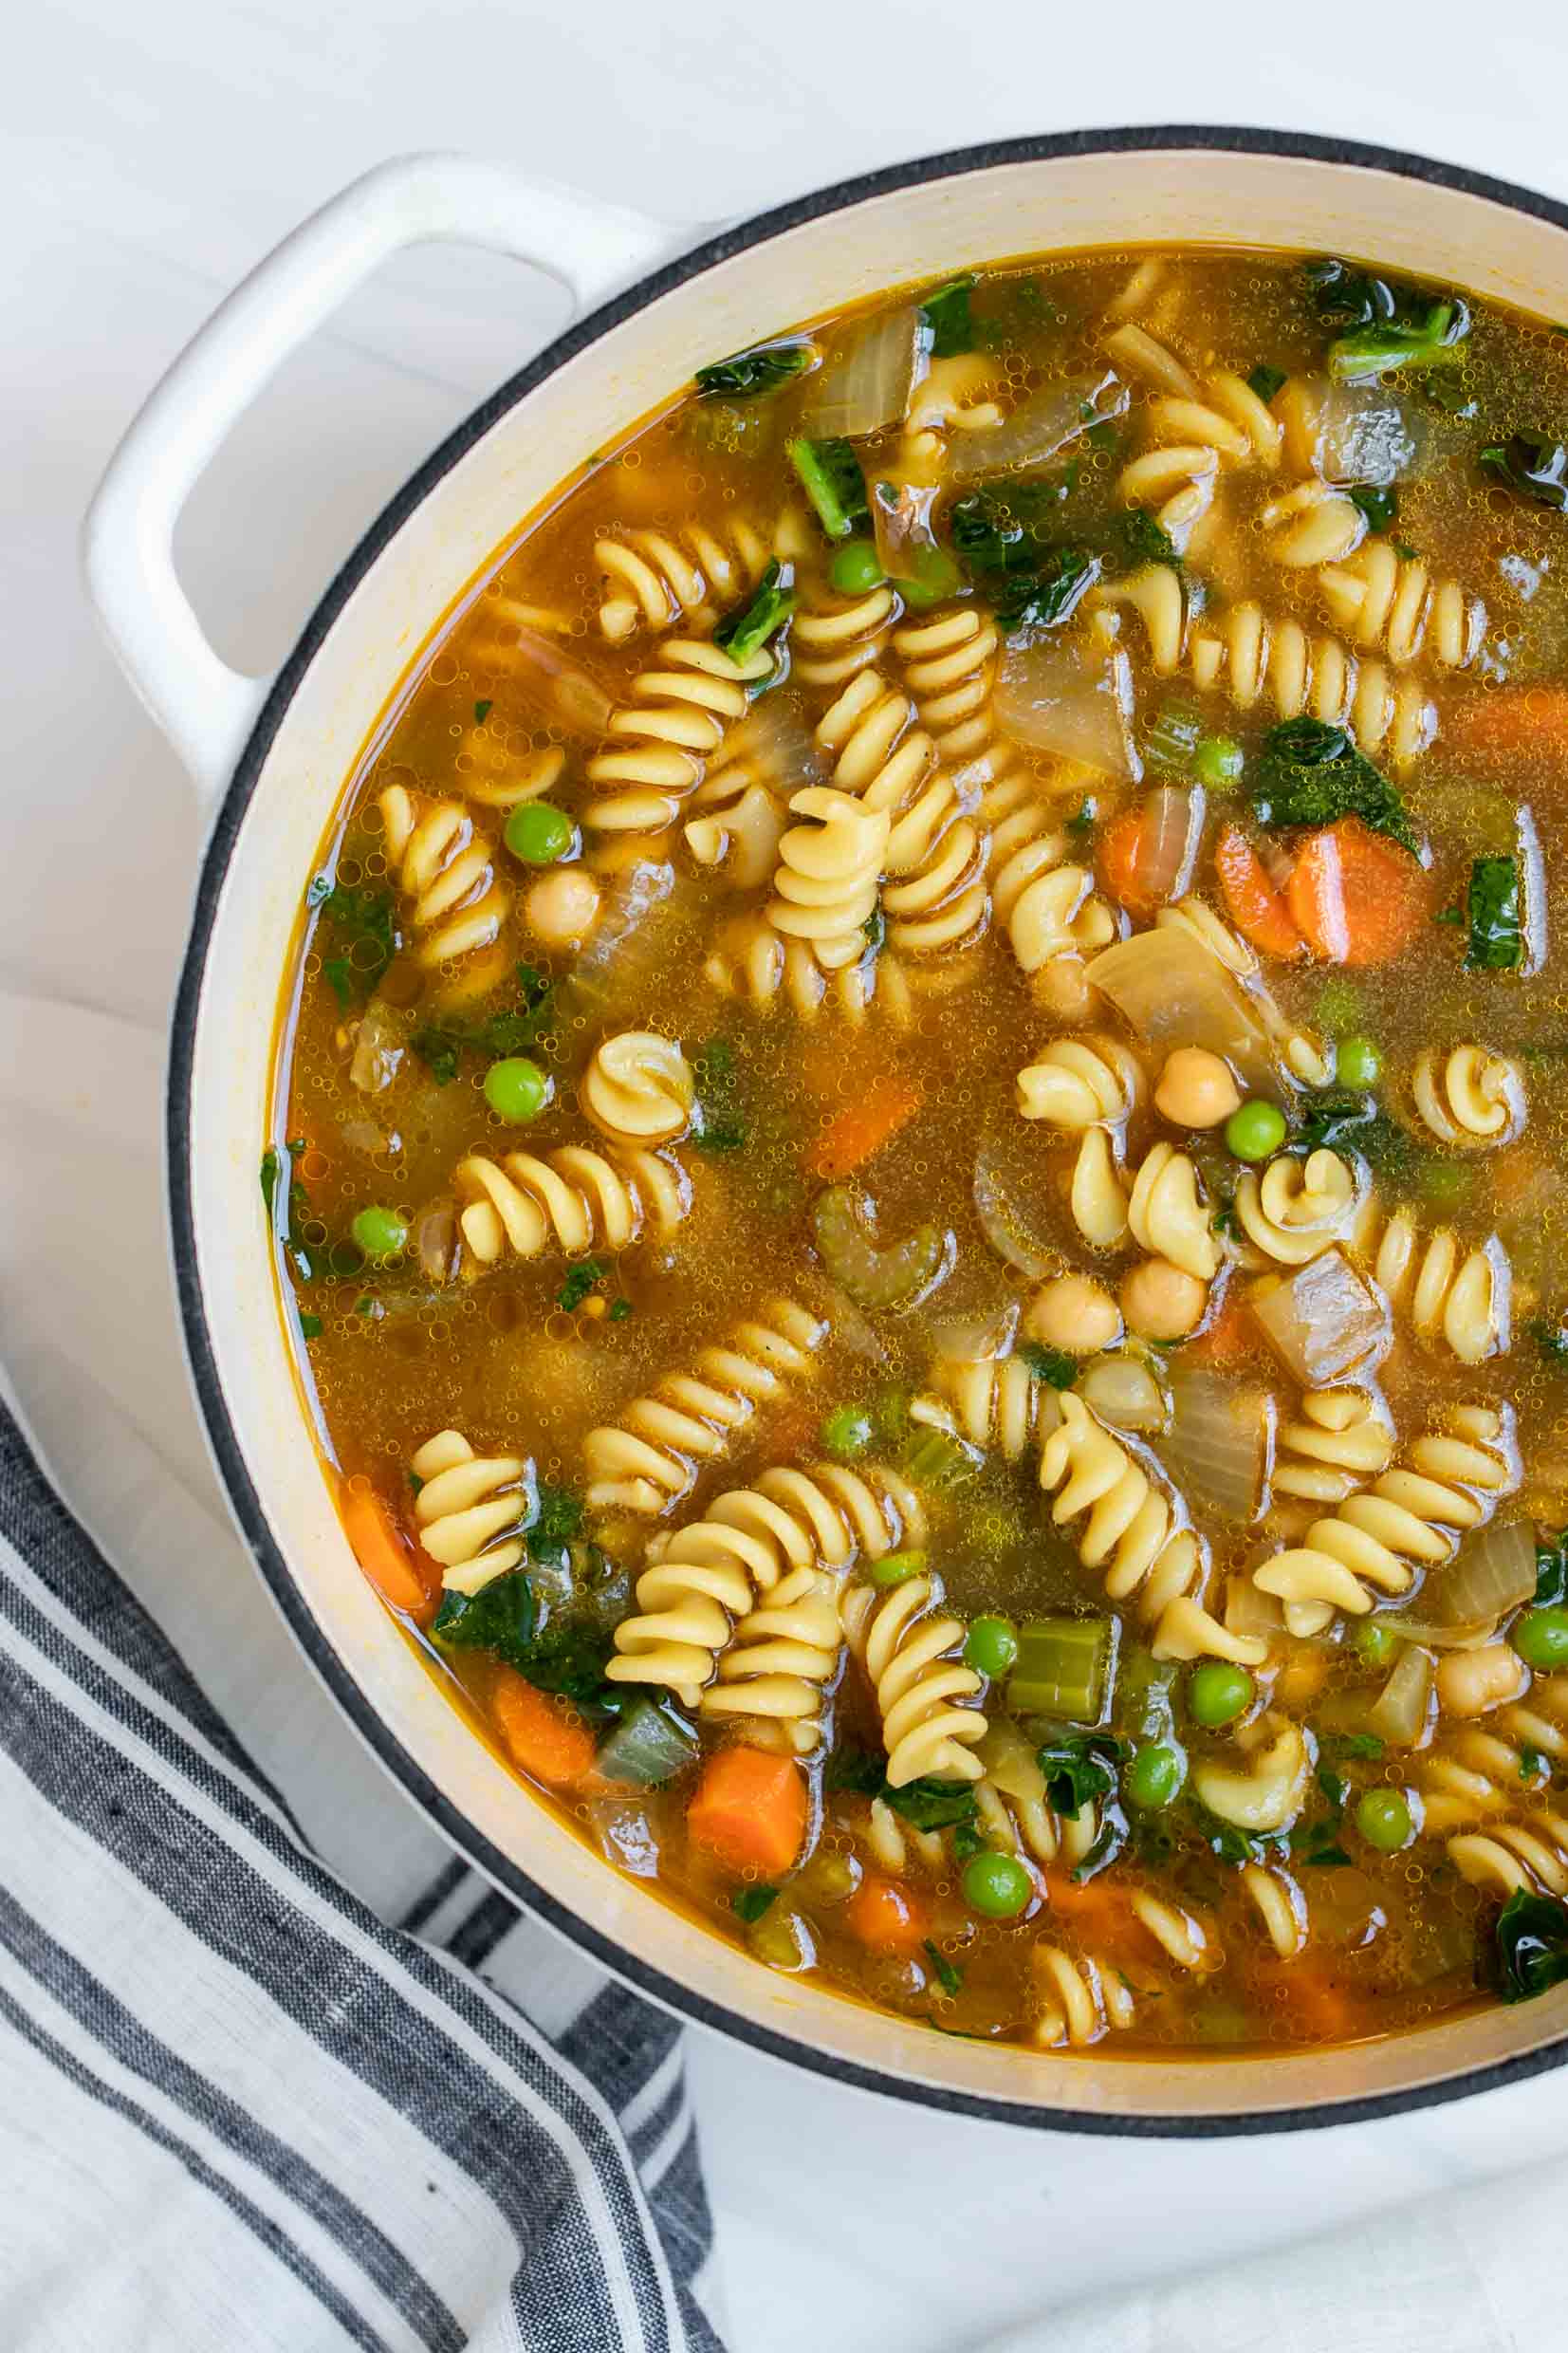 Chickpea noodle soup in a large white pot.